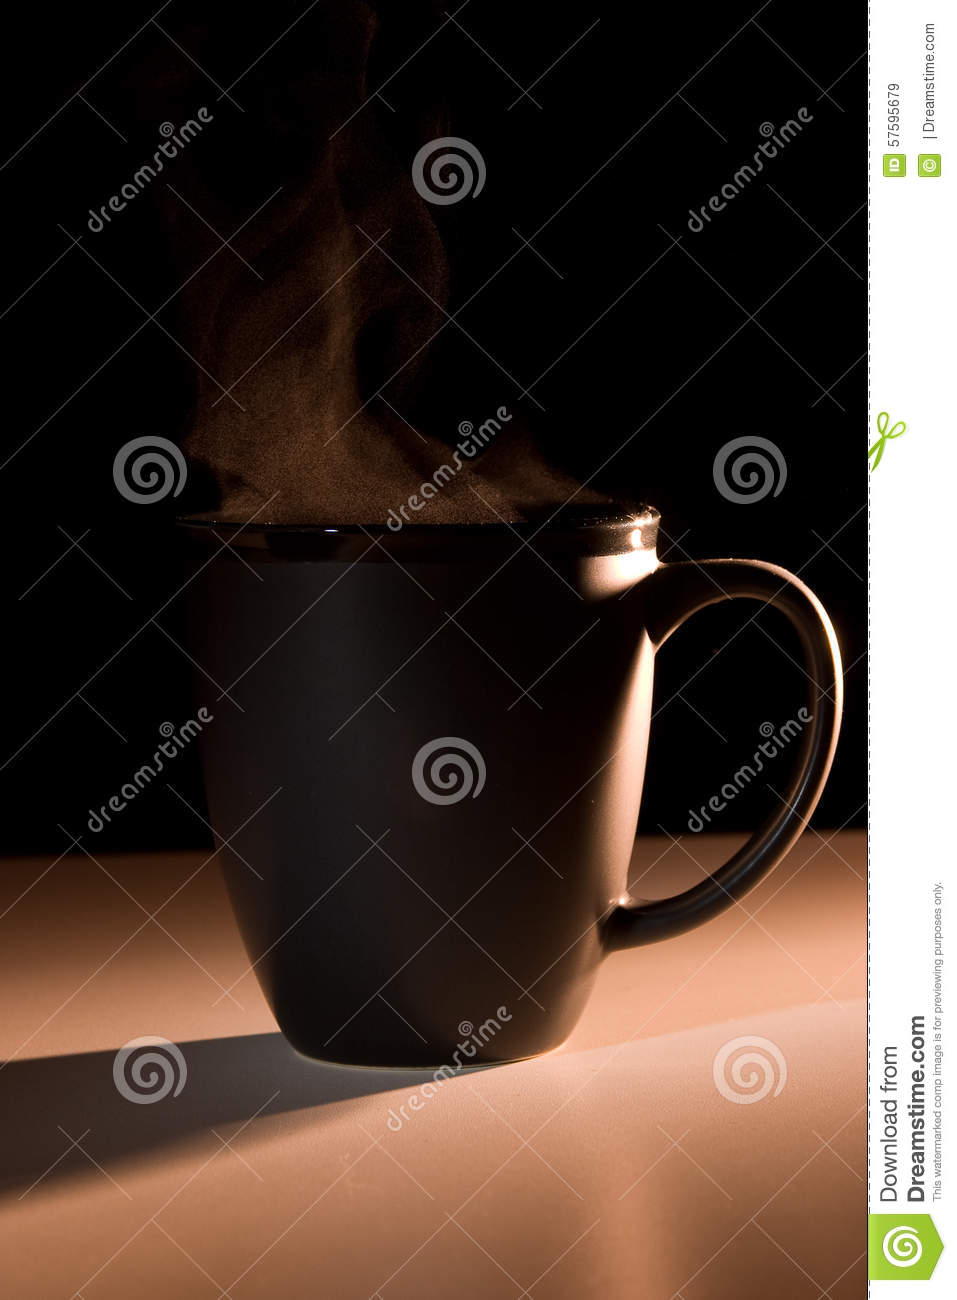 Download Steaming Black Bistro-style Mug Stock Image - Image of cocoa, warm: 57595679